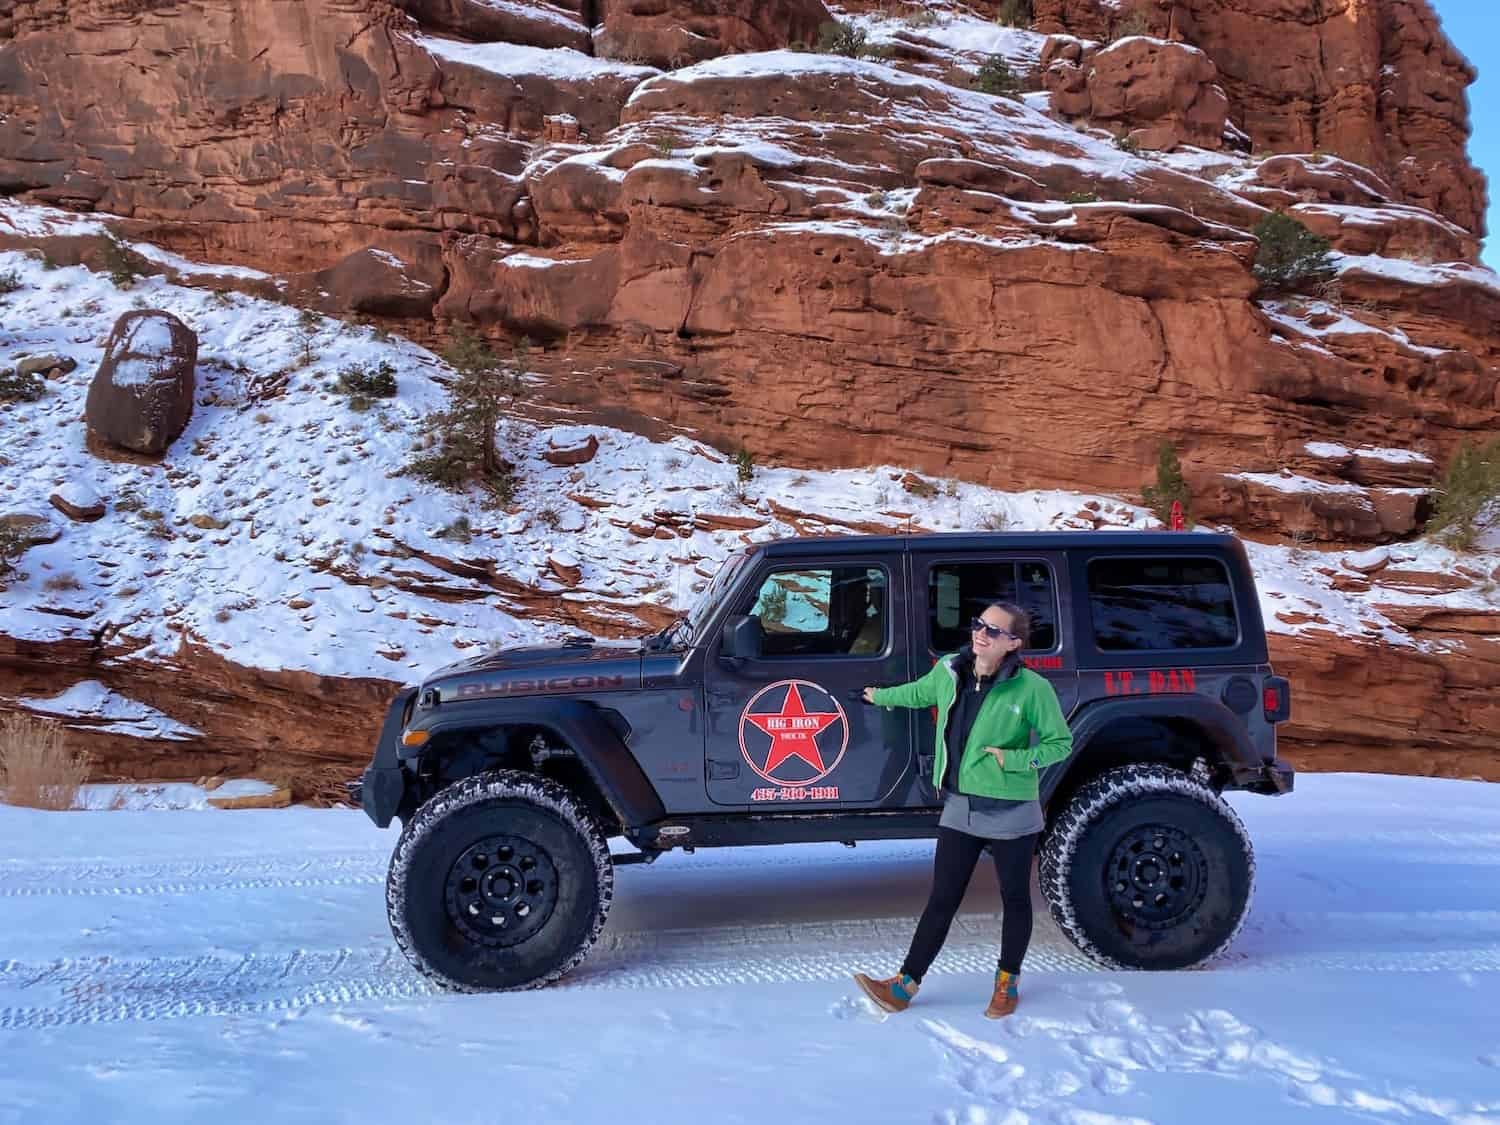 3 Days in Moab - Off-Roading